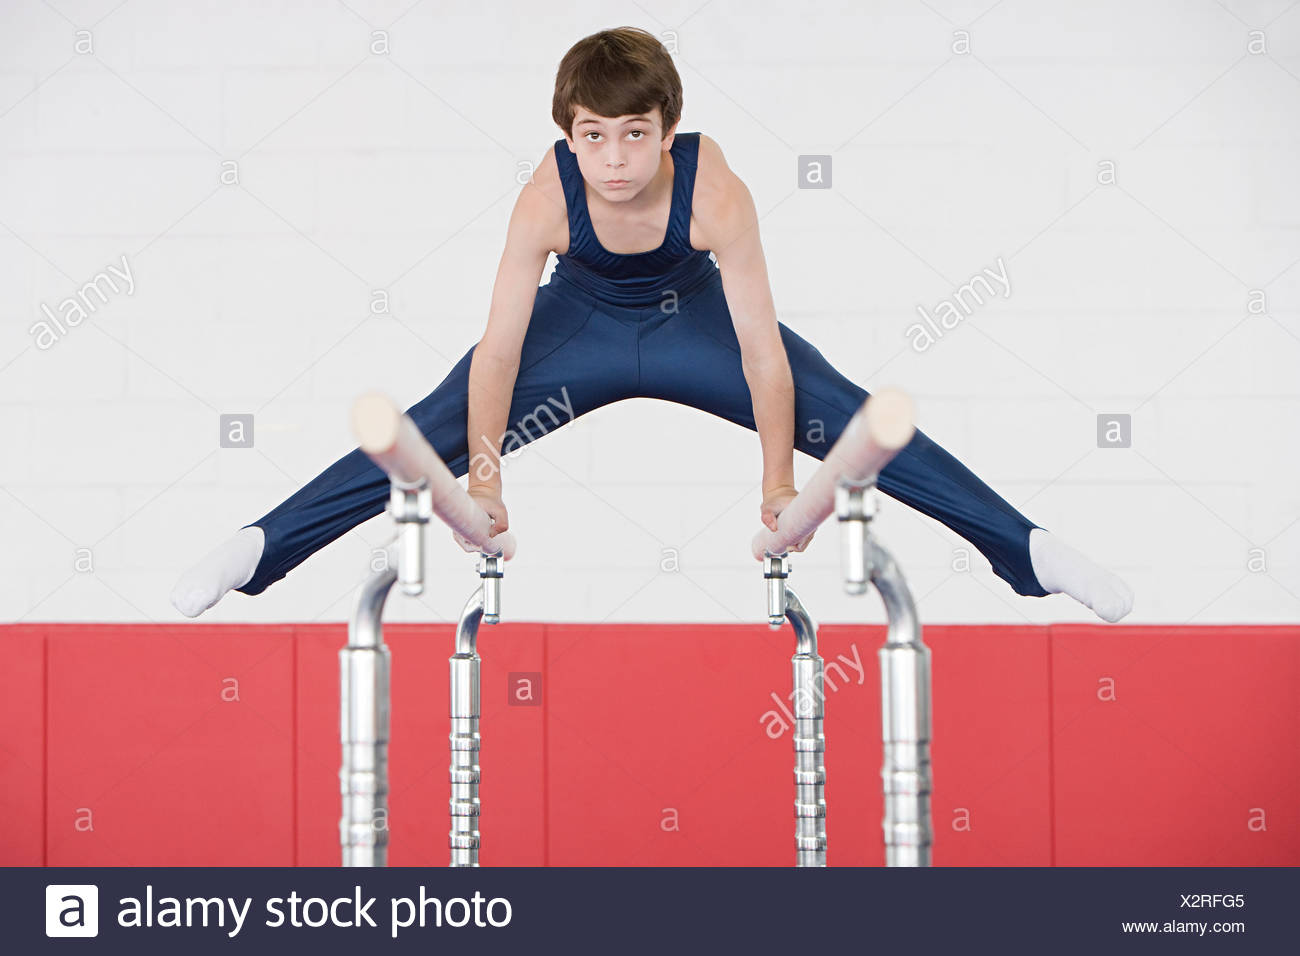 Gymnast doing the splits on parallel bars - Stock Image